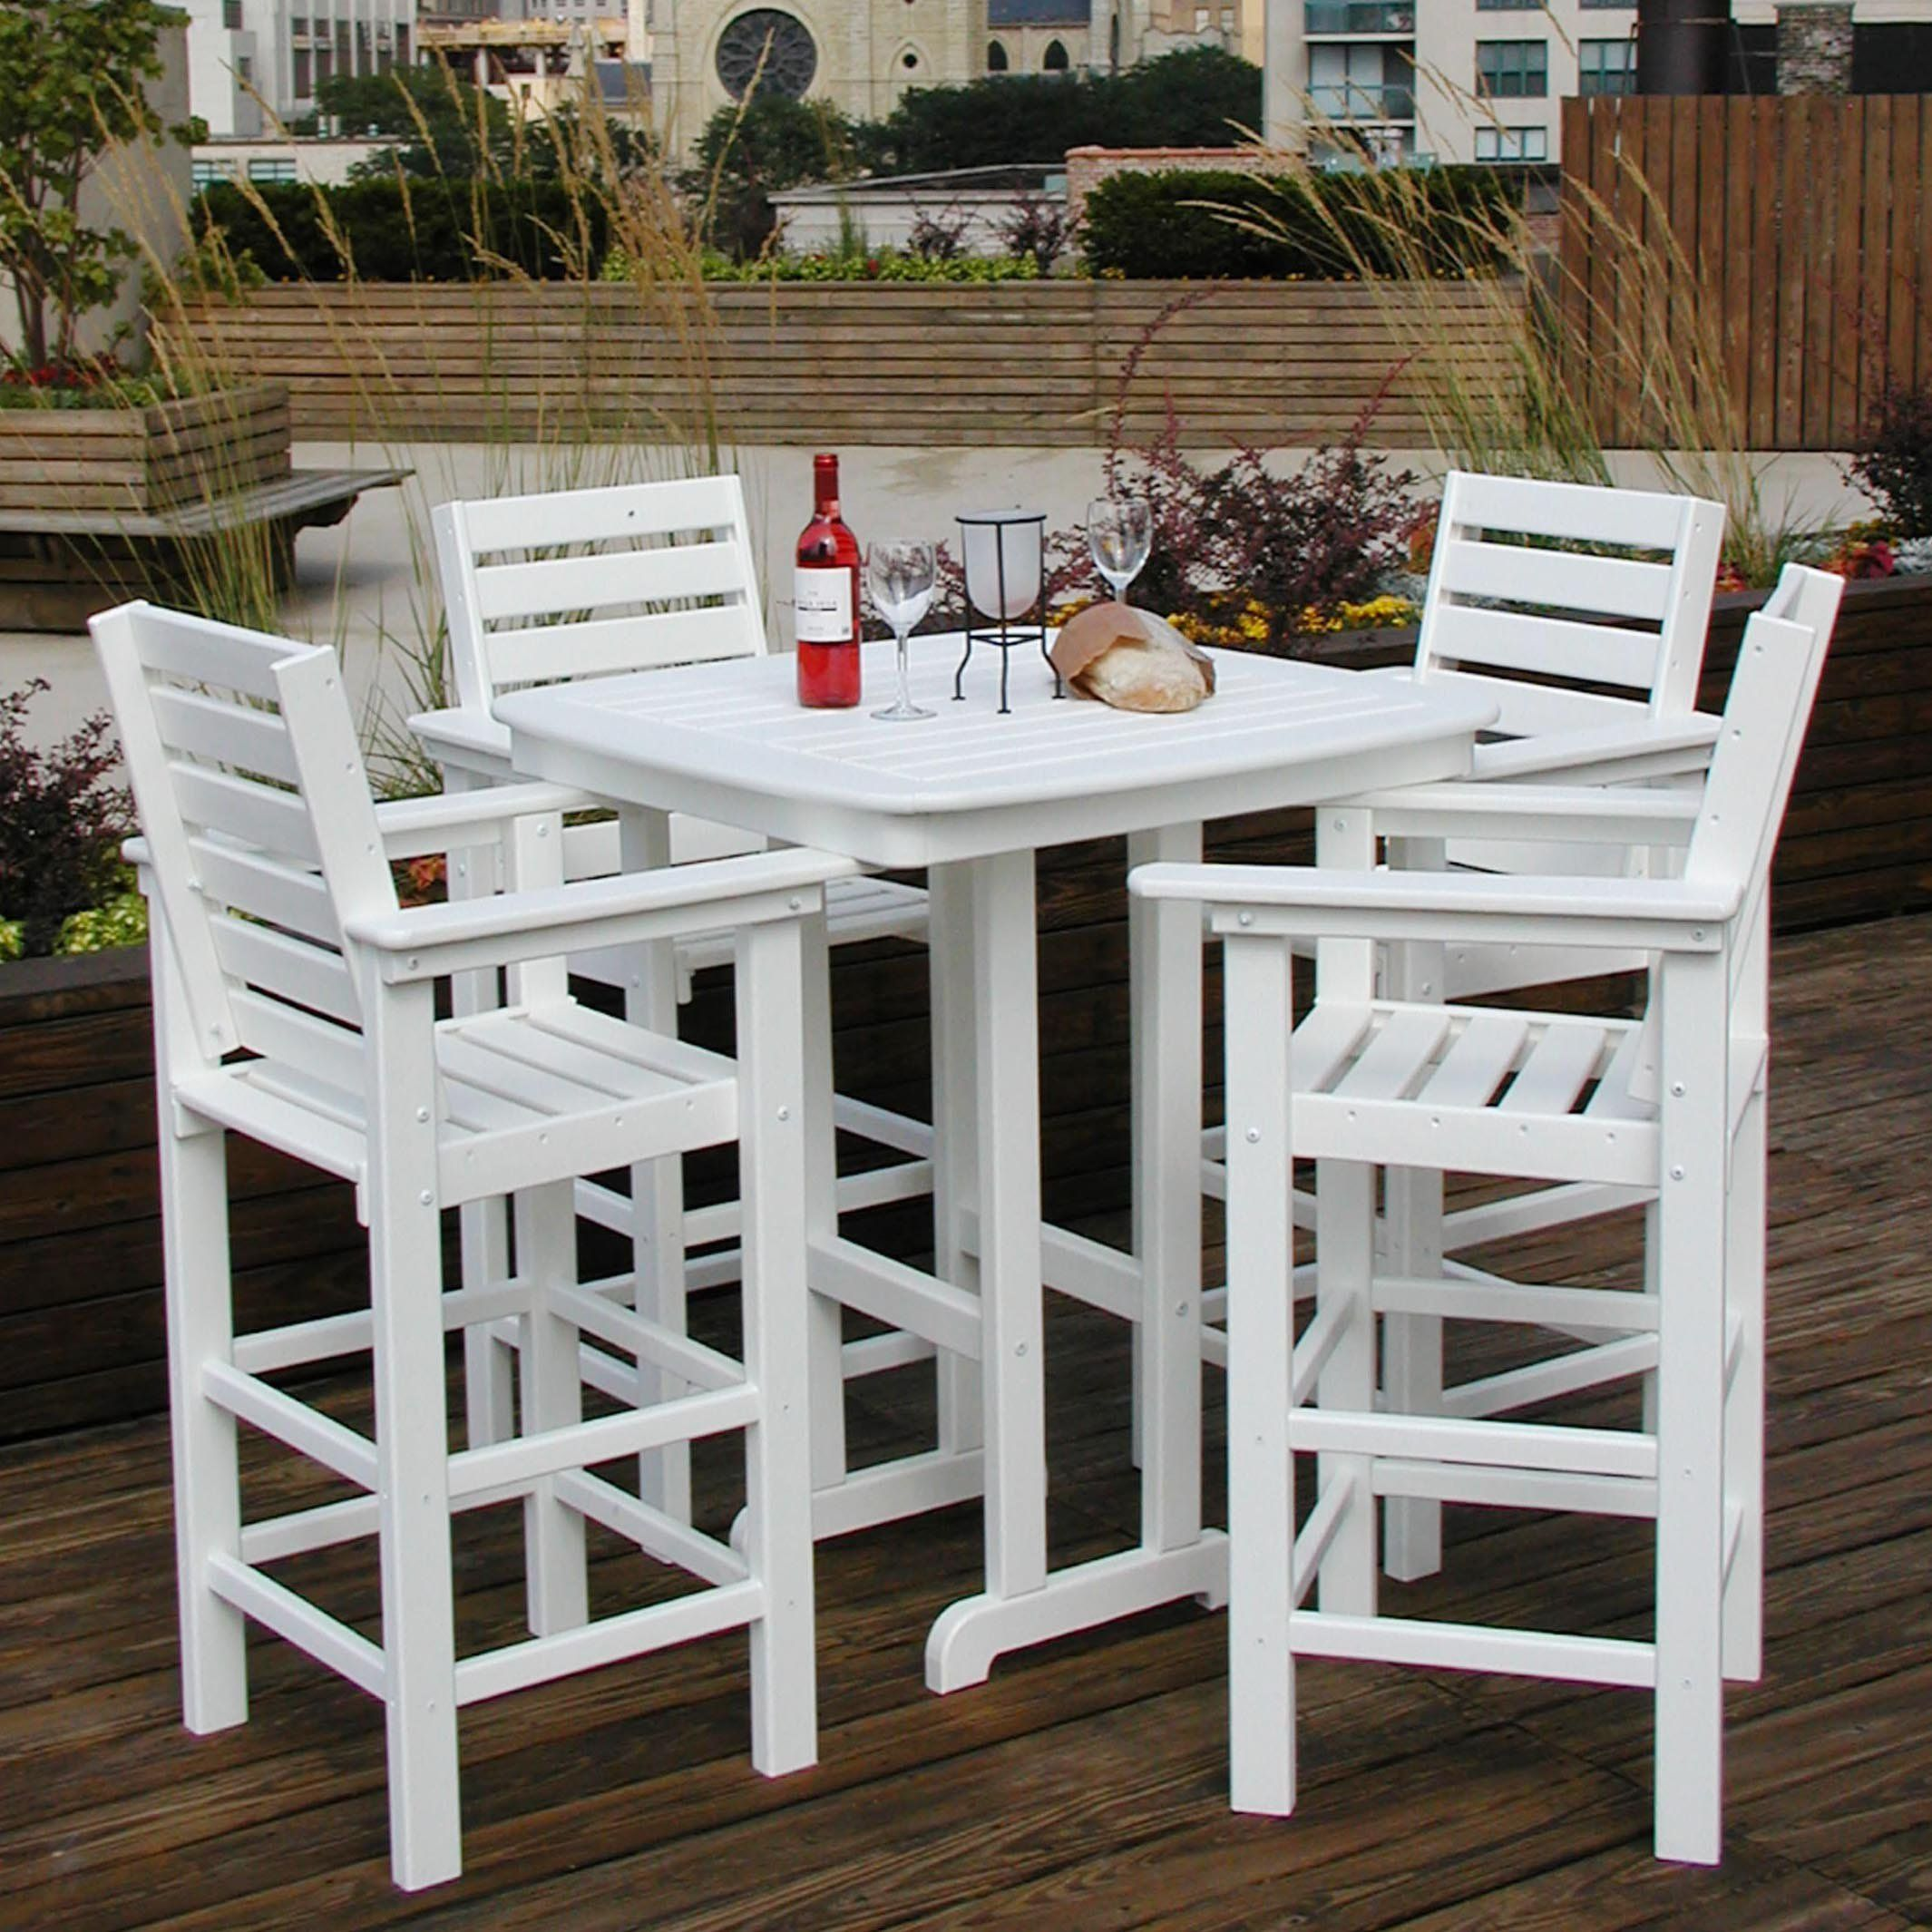 Polywood Captain 5 Pc Recycled Plastic Bar Height Dining Set